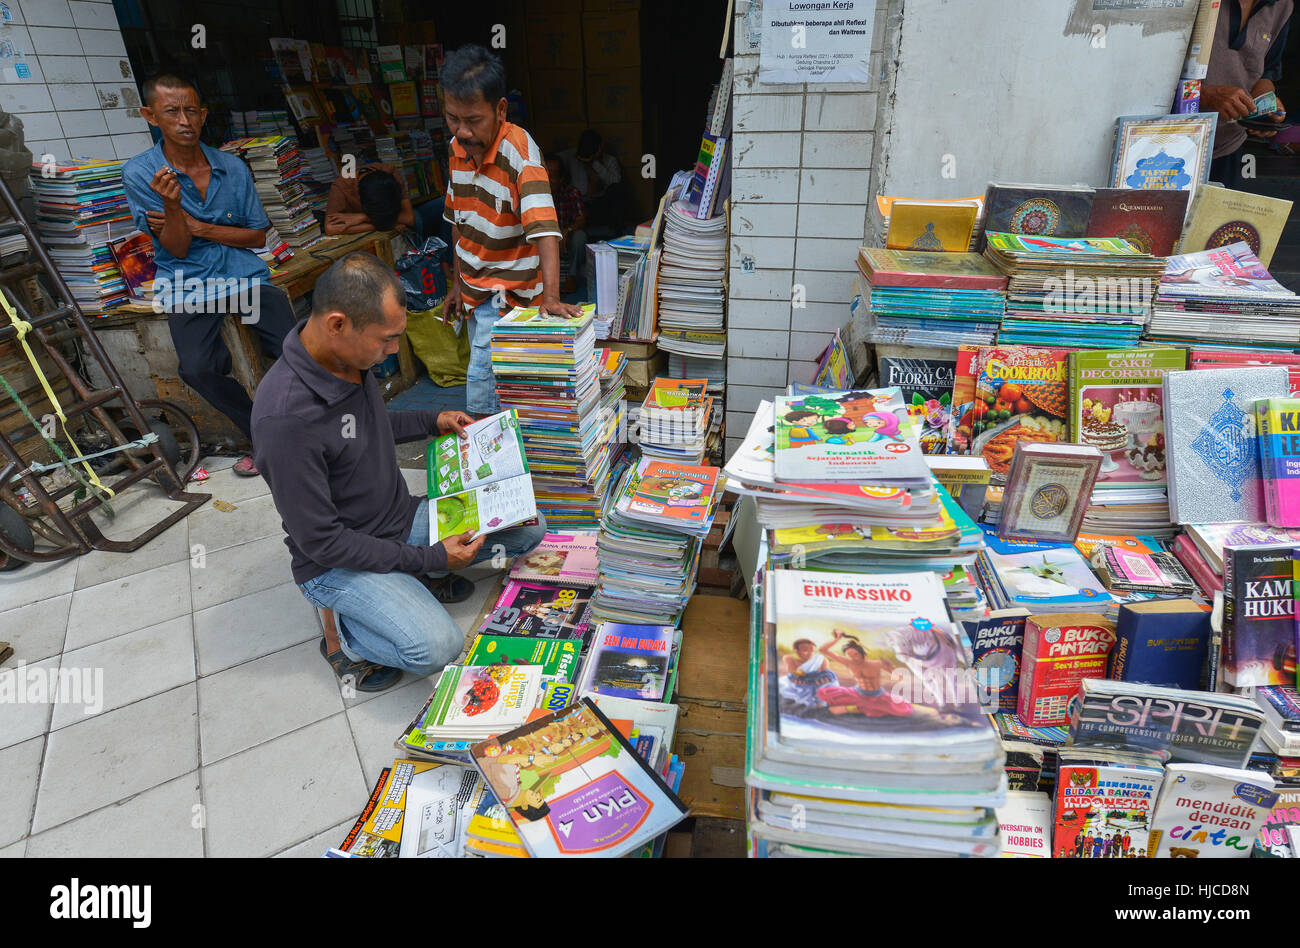 Jakarta, Java, Indonesia - August 25: Second-hand bookstores on a street on August 25, 2016 in Jakarta, Java, Indonesia. - Stock Image